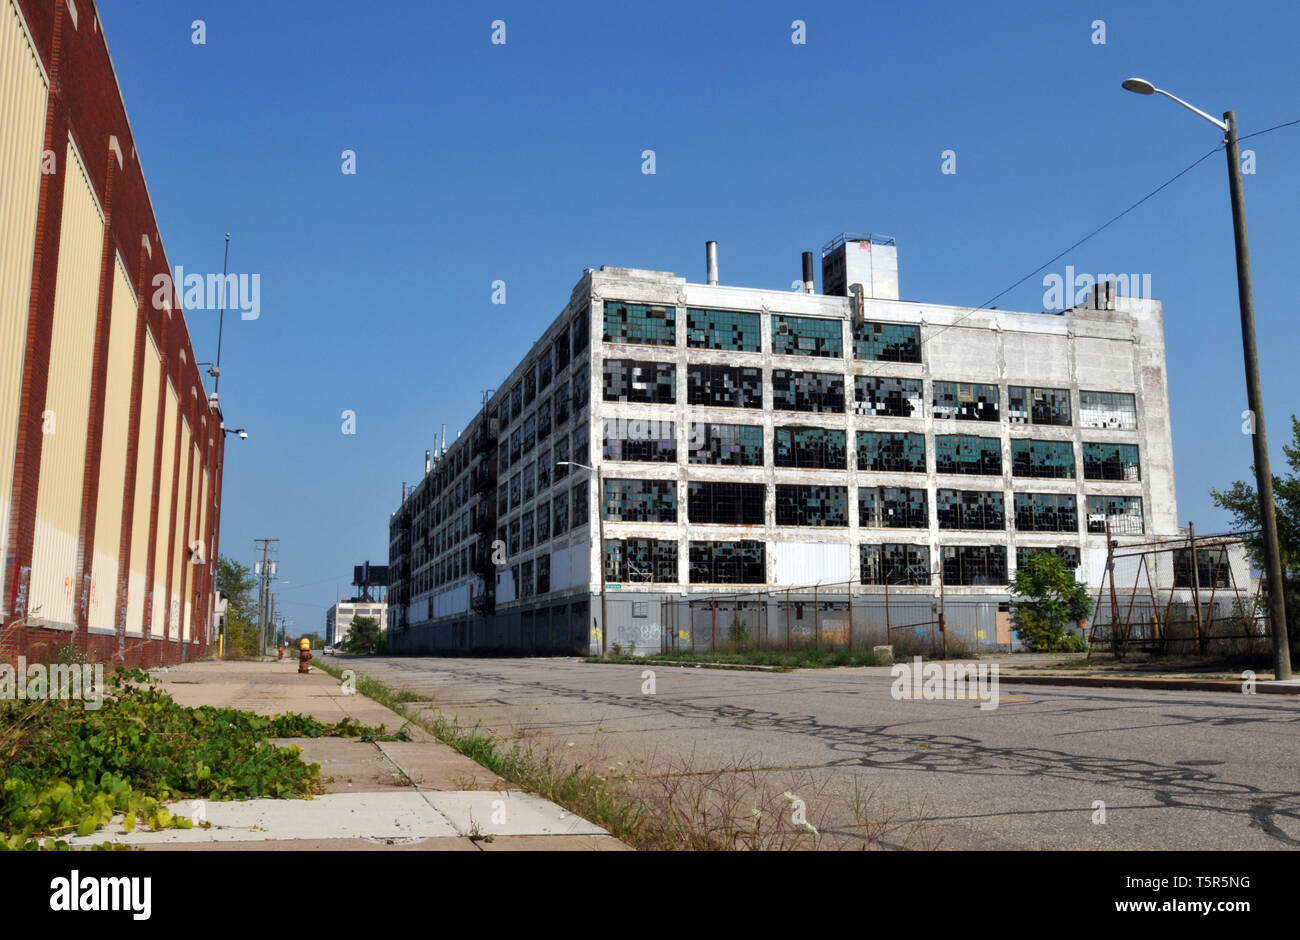 The long-abandoned Fisher Body Plant 21 in Detroit, Michigan. Designed by architect Albert Kahn, the automotive body plant was built in 1919. - Stock Image